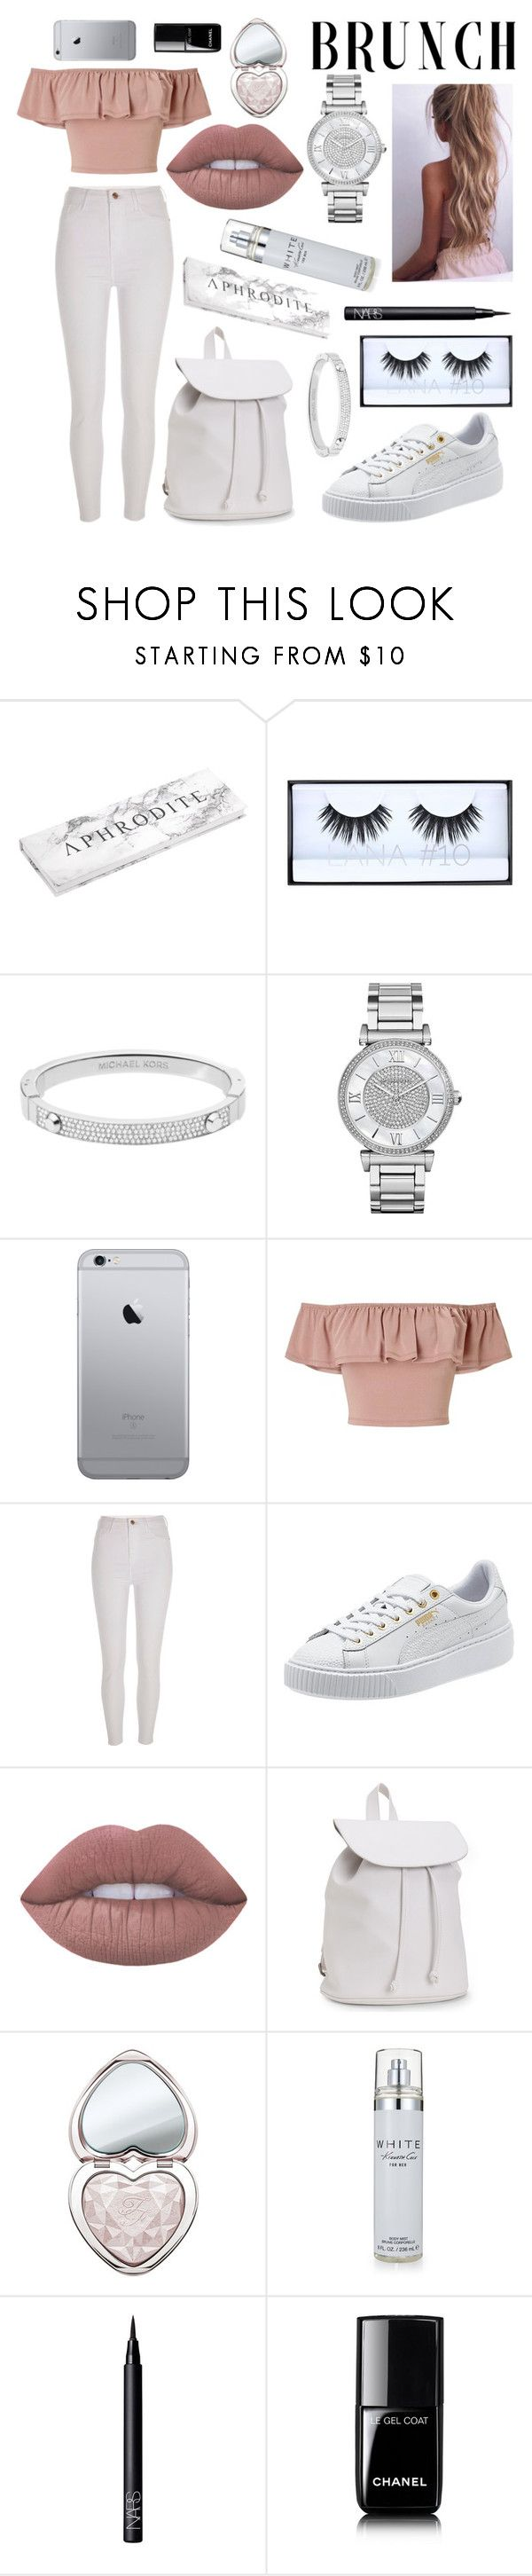 """""""cute mother's day ootd ⚜️"""" by aliisaannna ❤ liked on Polyvore featuring Huda Beauty, Michael Kors, Miss Selfridge, River Island, Lime Crime, Aéropostale, Too Faced Cosmetics, Kenneth Cole, NARS Cosmetics and Chanel"""